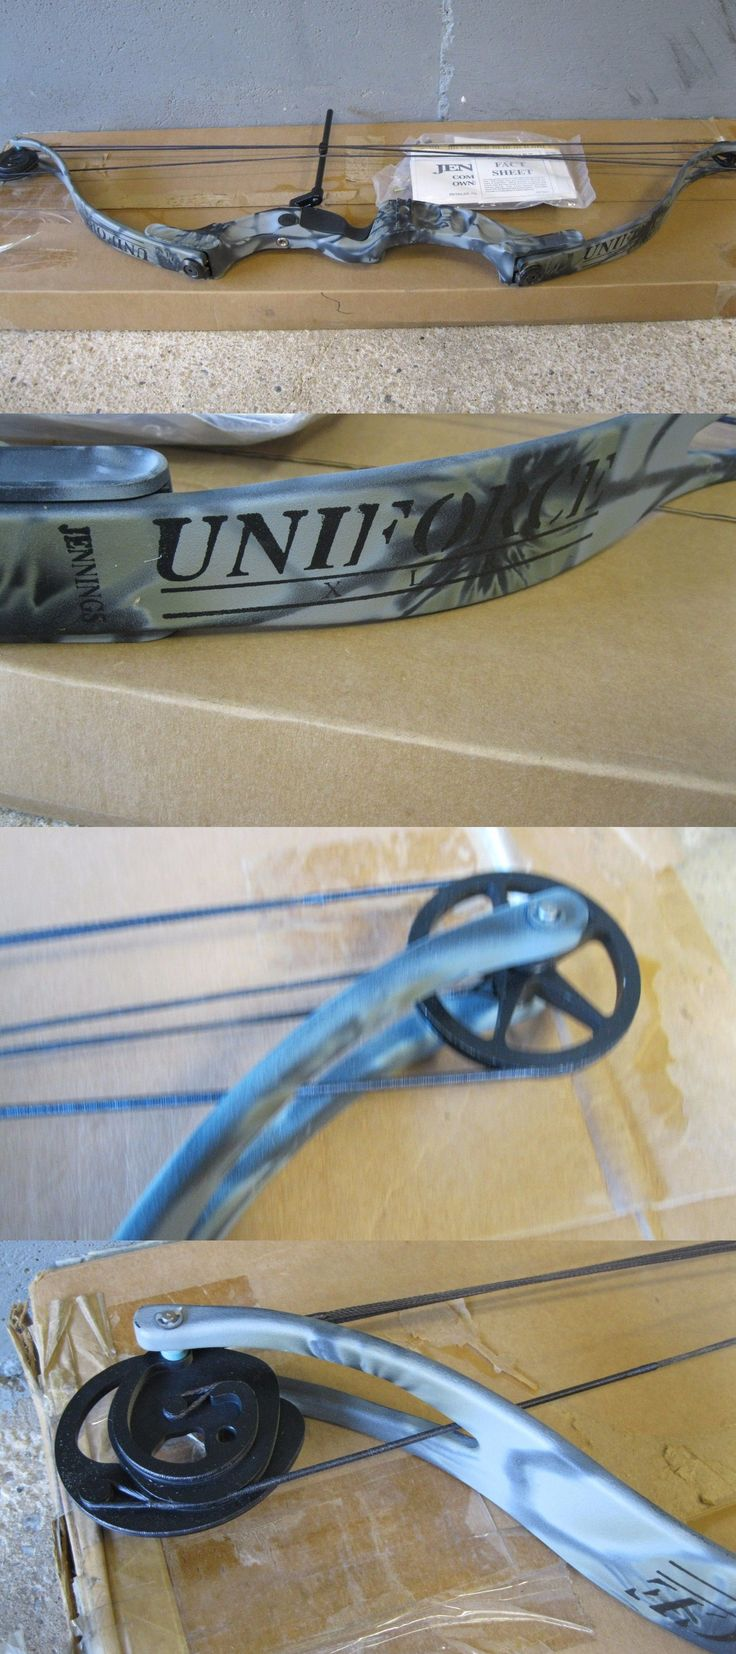 Bowhunting 159037: Jennings Carbon Camo Uniforce Xlr Left Handed Compound Bow *Nib* -> BUY IT NOW ONLY: $125 on eBay!